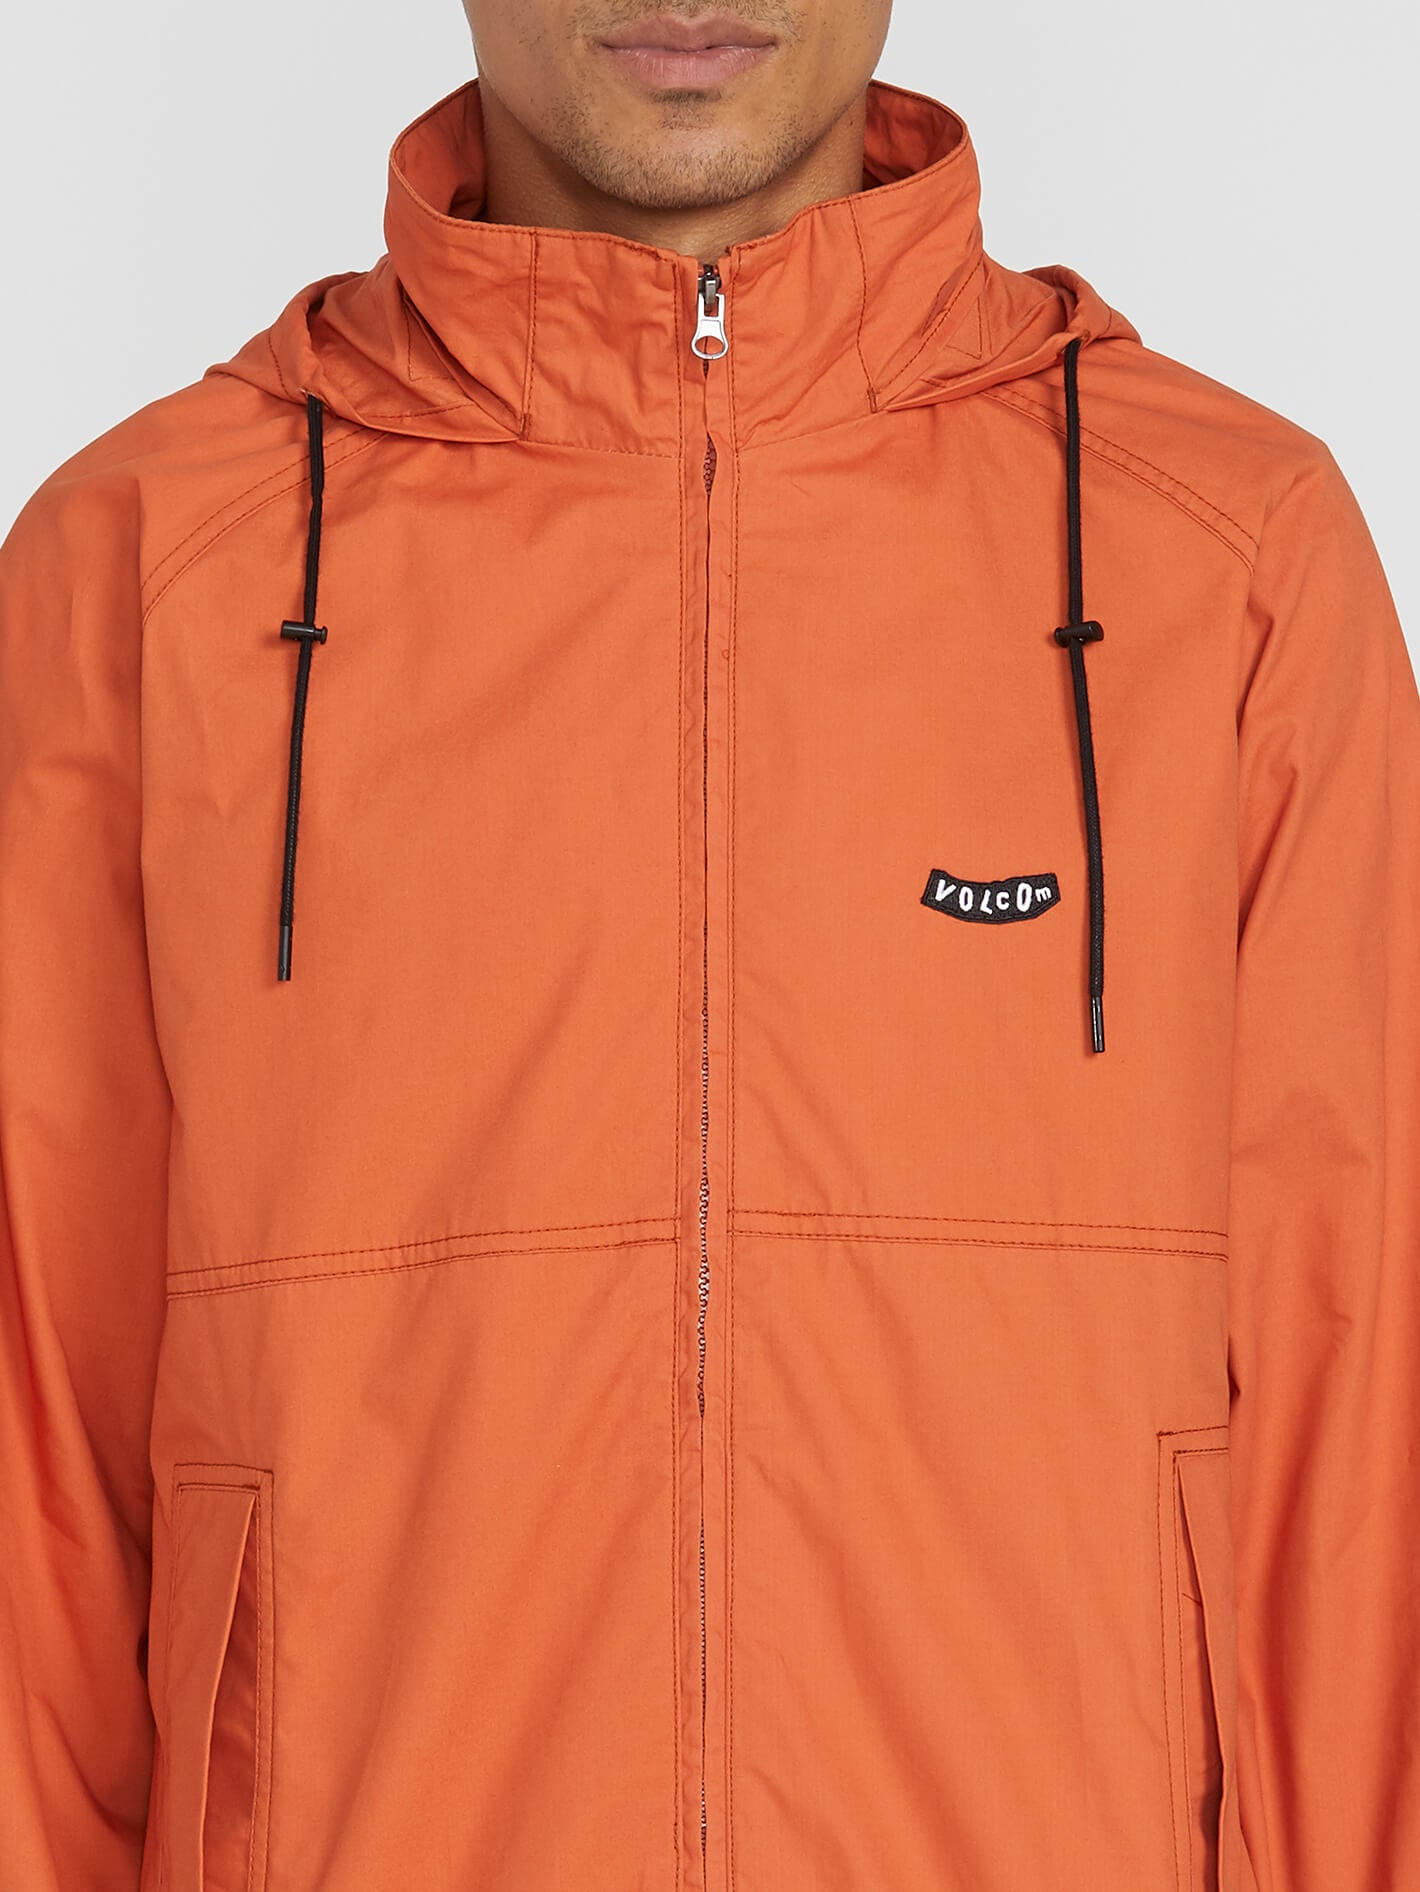 M 5//6 Free Country Little Boys/' Packable Down Jacket Charcoal//Orange